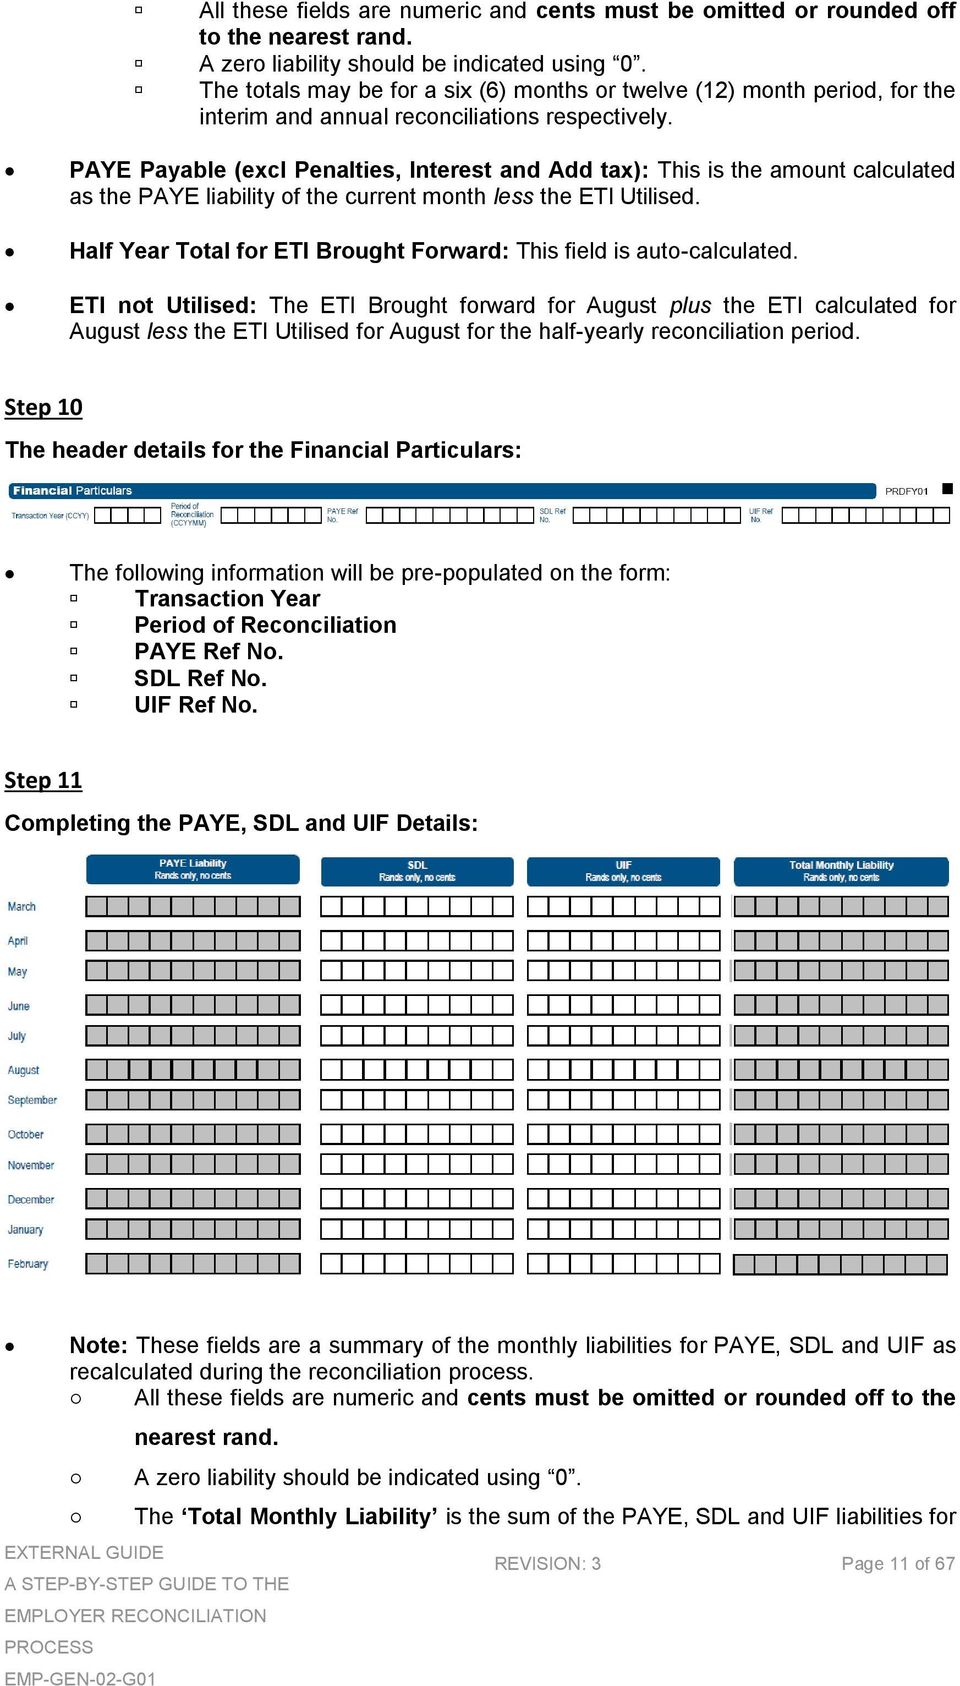 PAYE Payable (excl Penalties, Interest and Add tax): This is the amount calculated as the PAYE liability of the current month less the ETI Utilised.